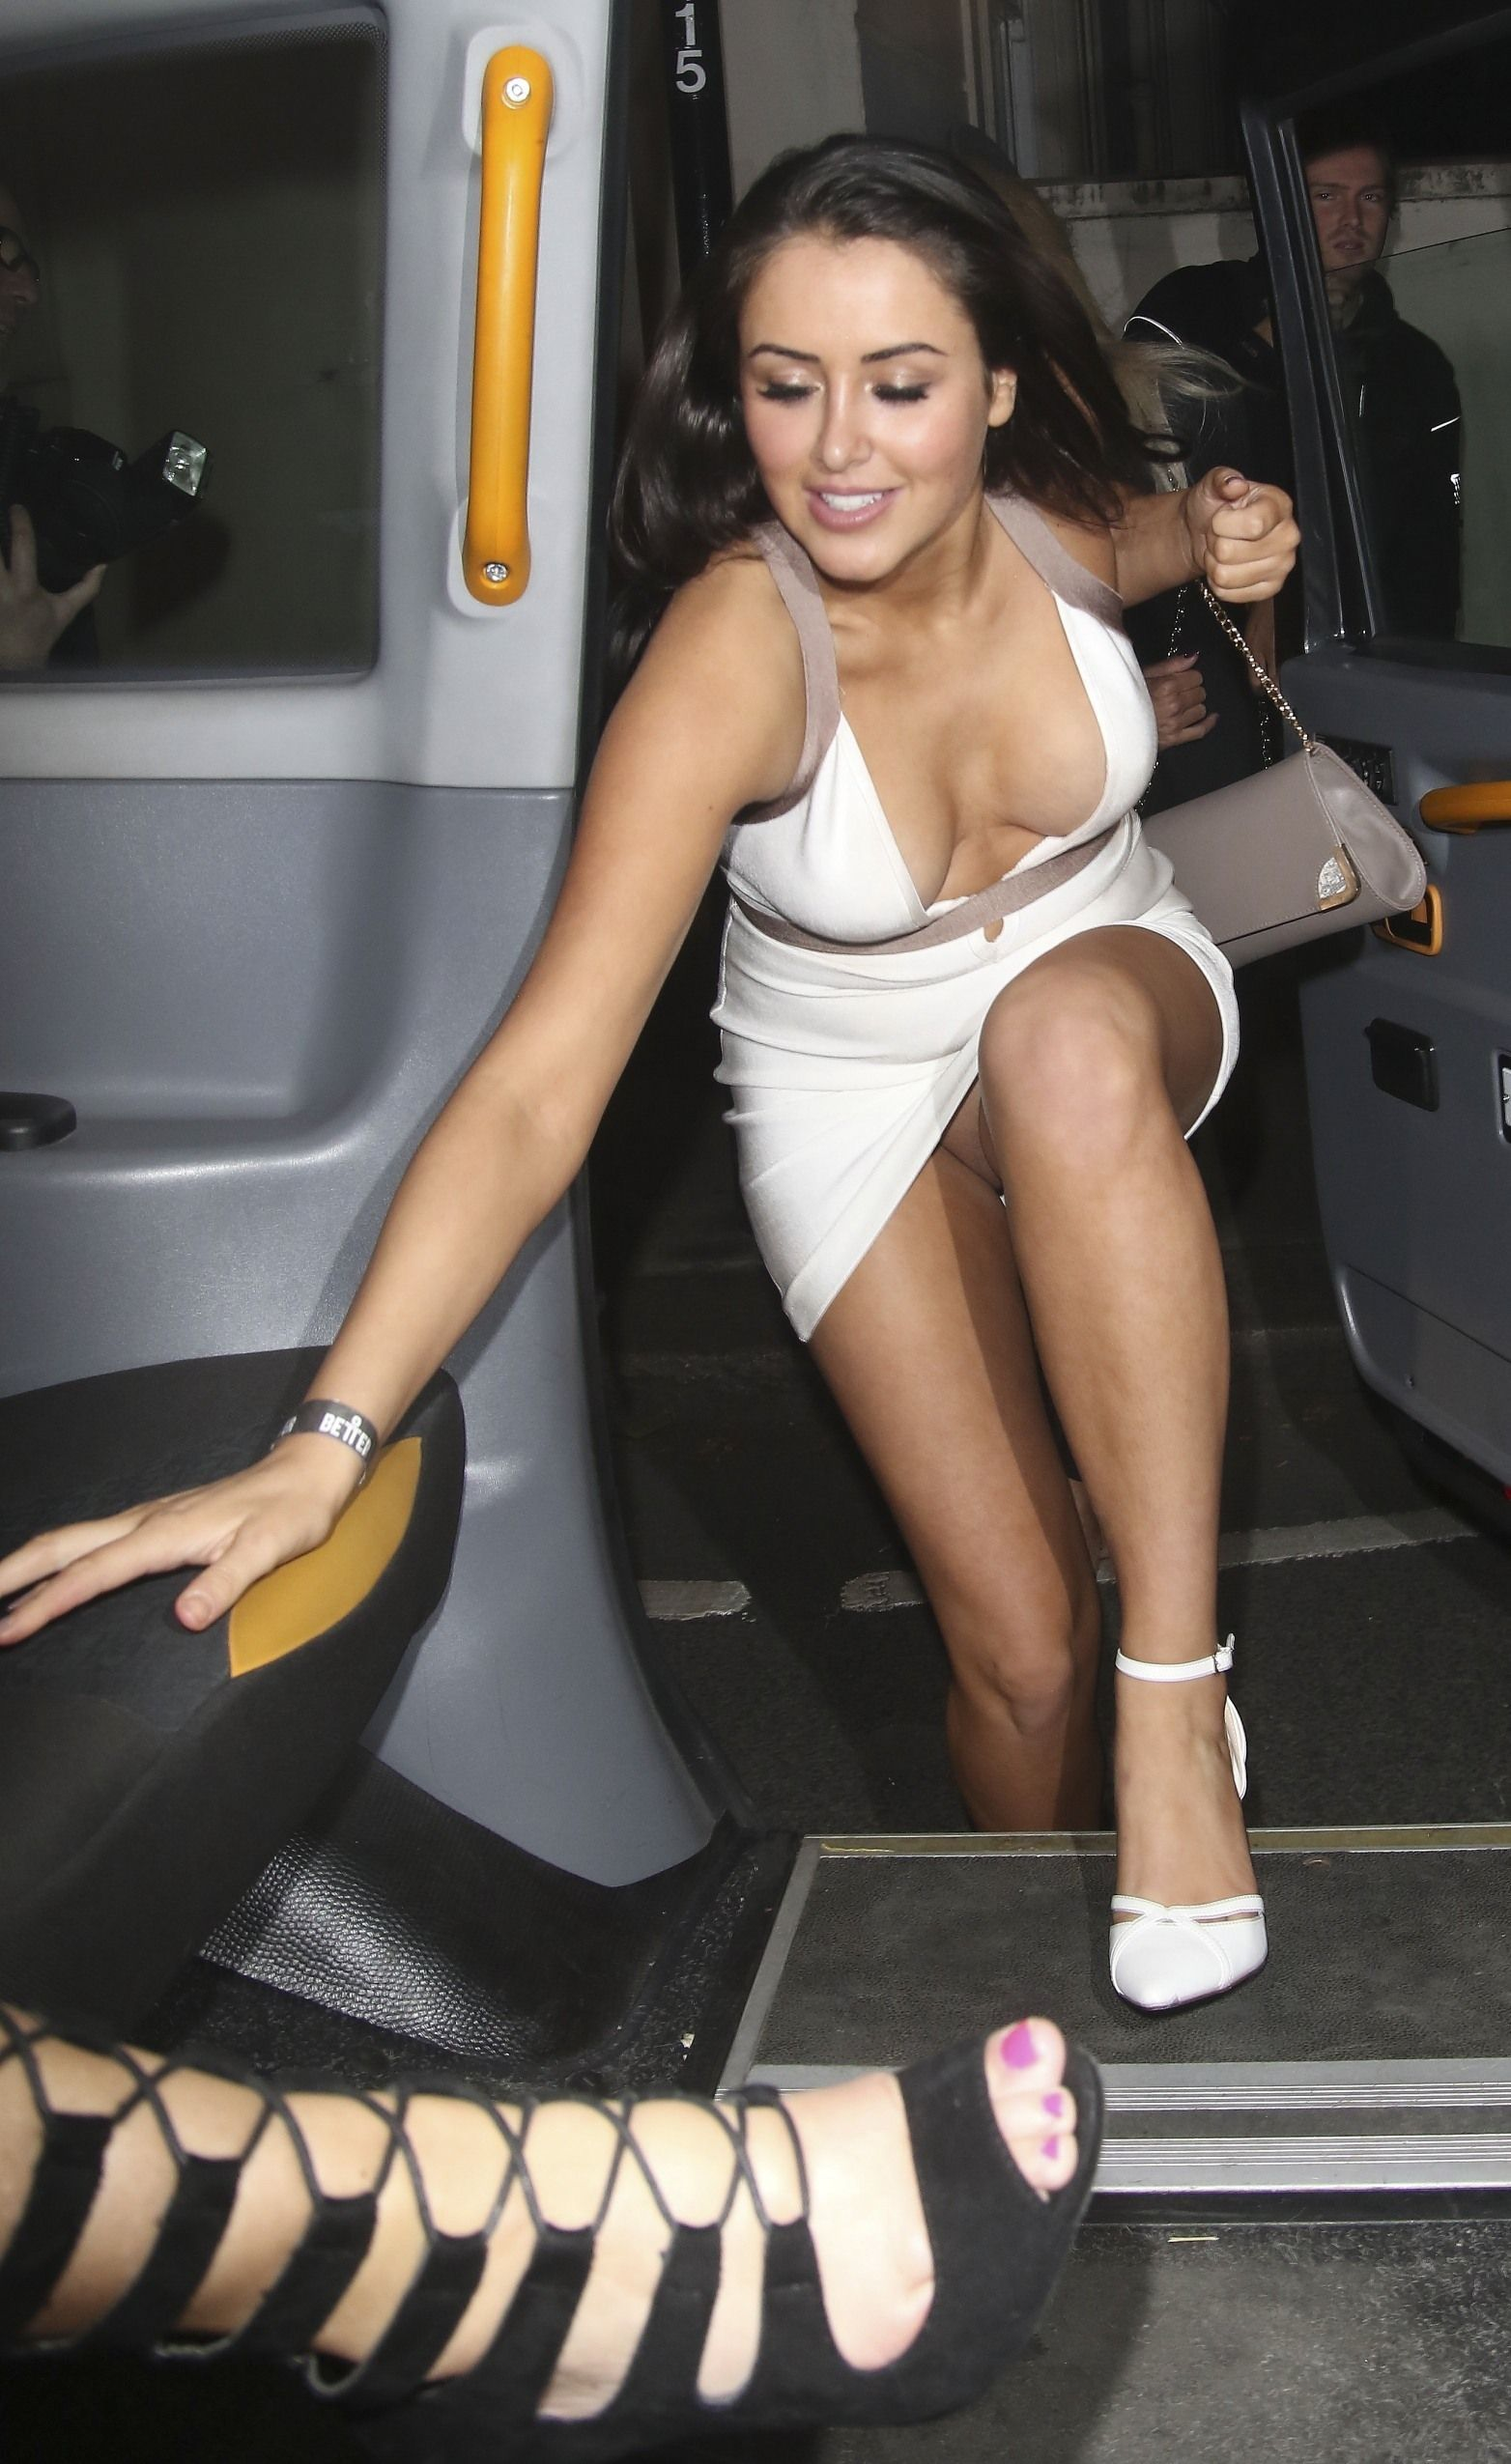 marnie-simpson-pantyless-upskirt-areola-peek-reality-tv-awards-18